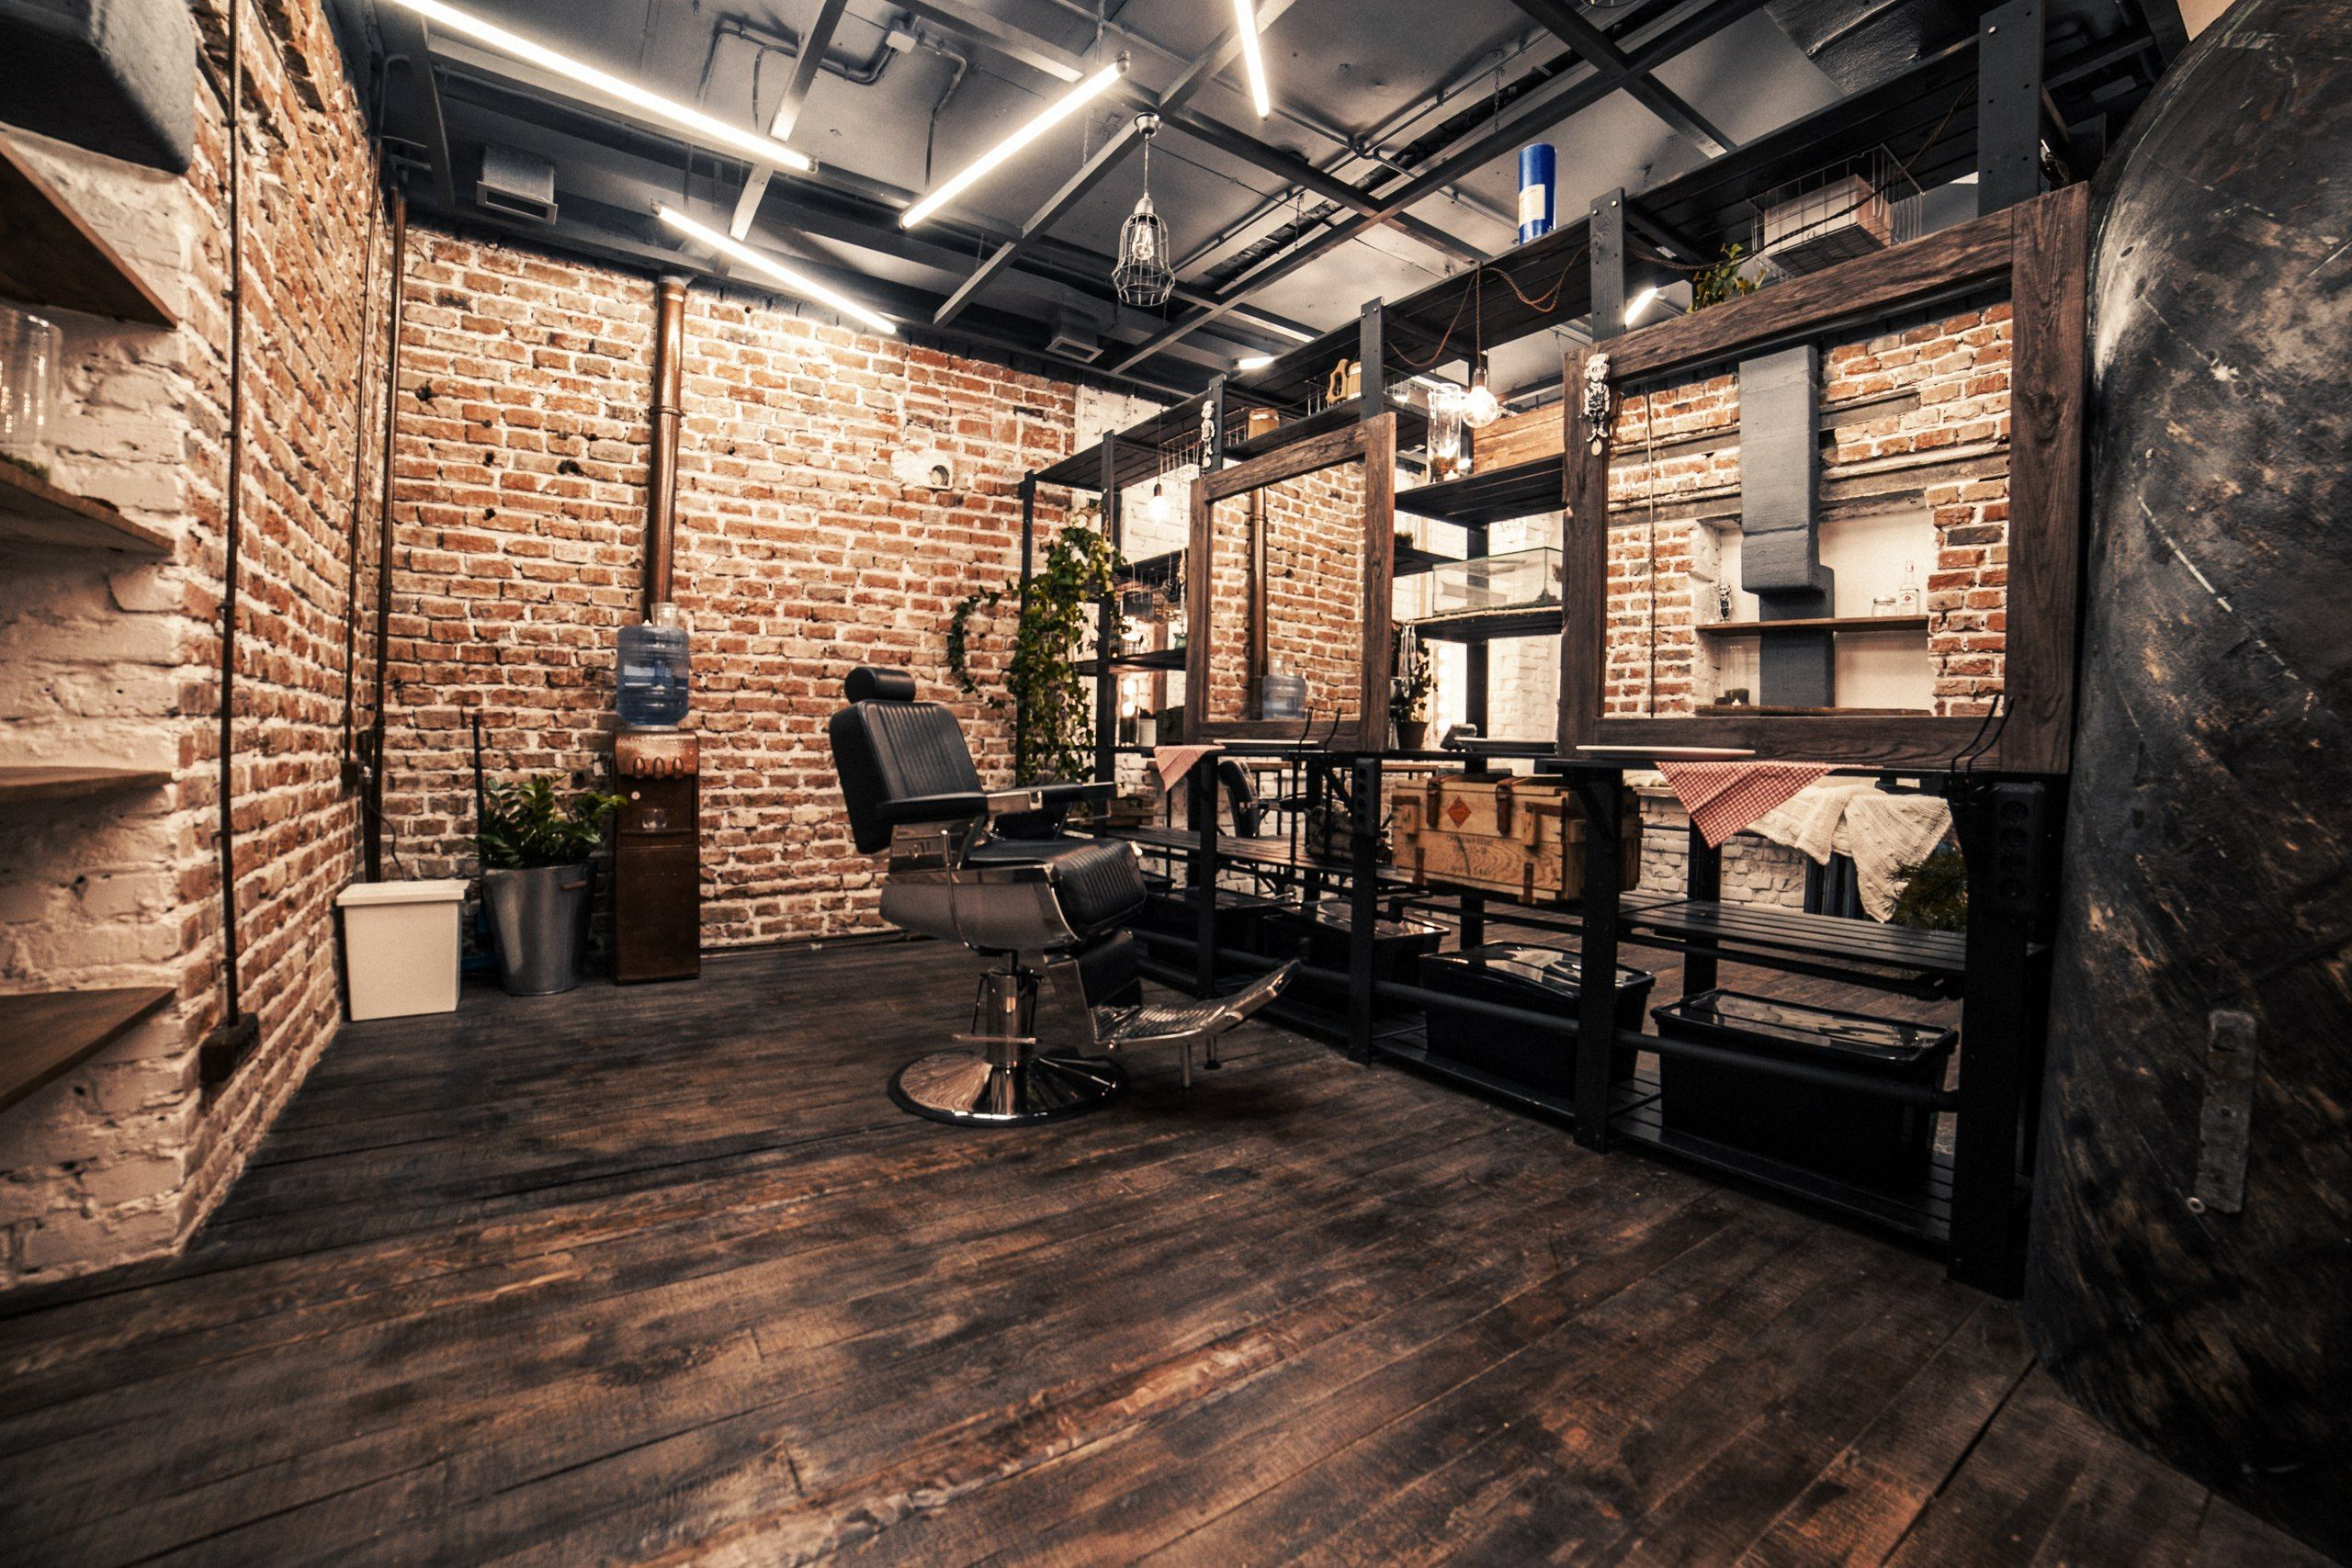 Loft interior barbershop beautyshop style haircuts for Shop with loft